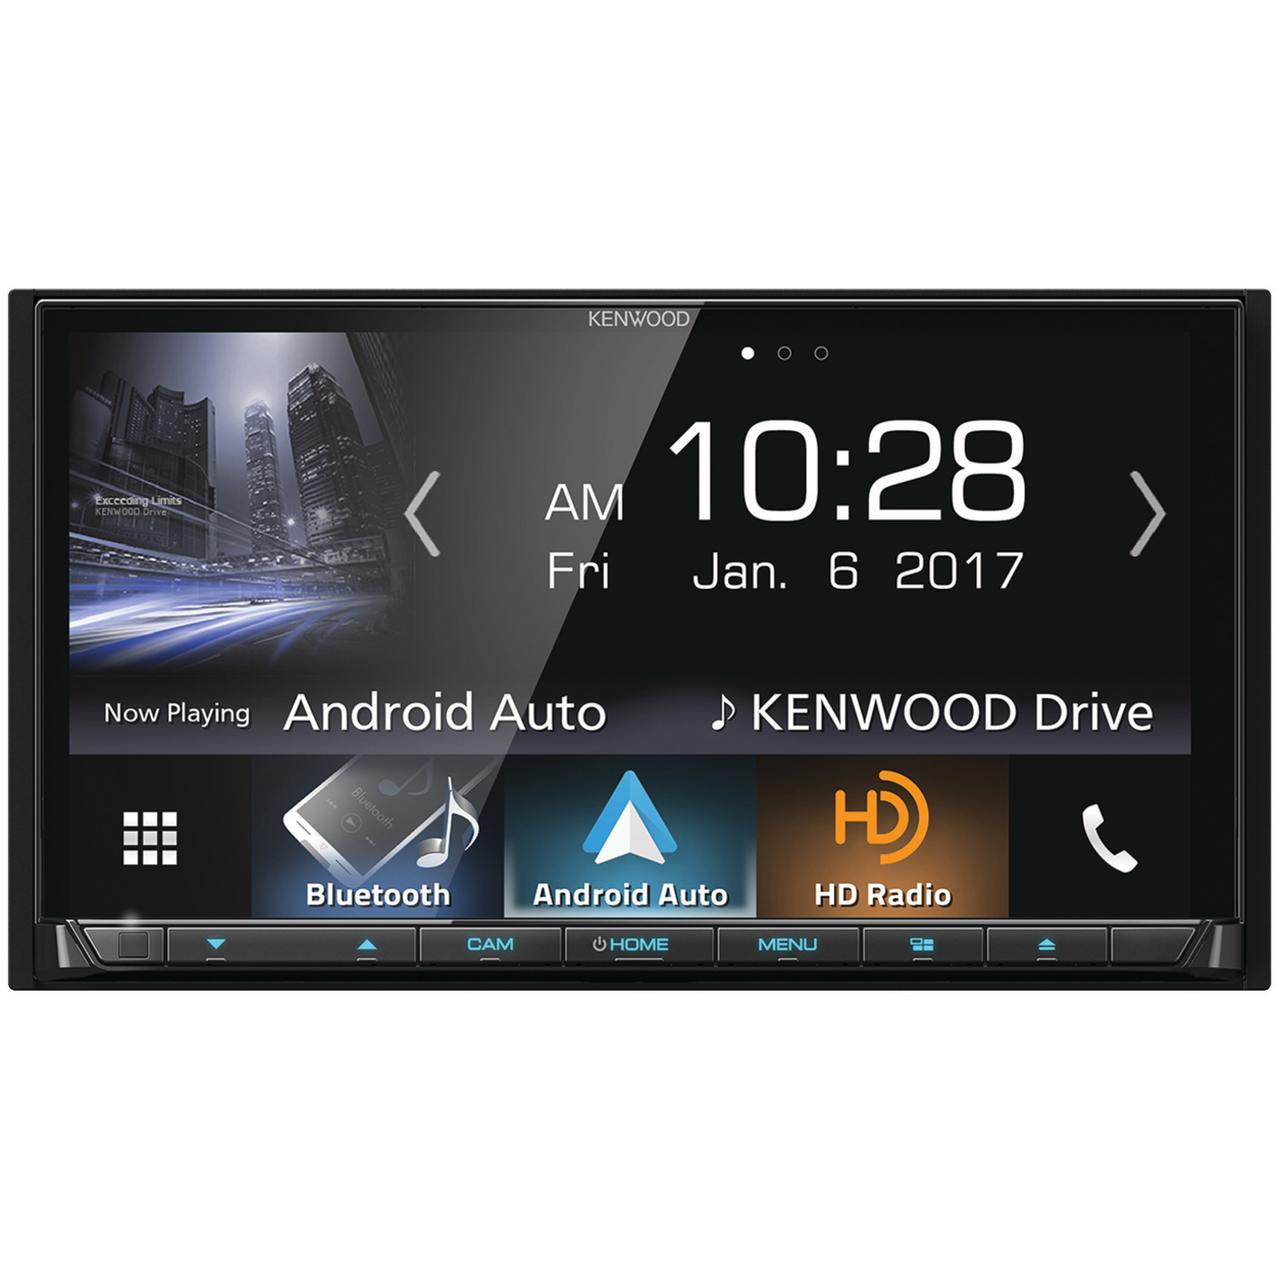 "Kenwood Ddx9704s 6.95"" Double-Din In-Dash DVD Receiver With Bluetooth, Apple Carplay, Android Auto, HD Radio &... by Kenwood"